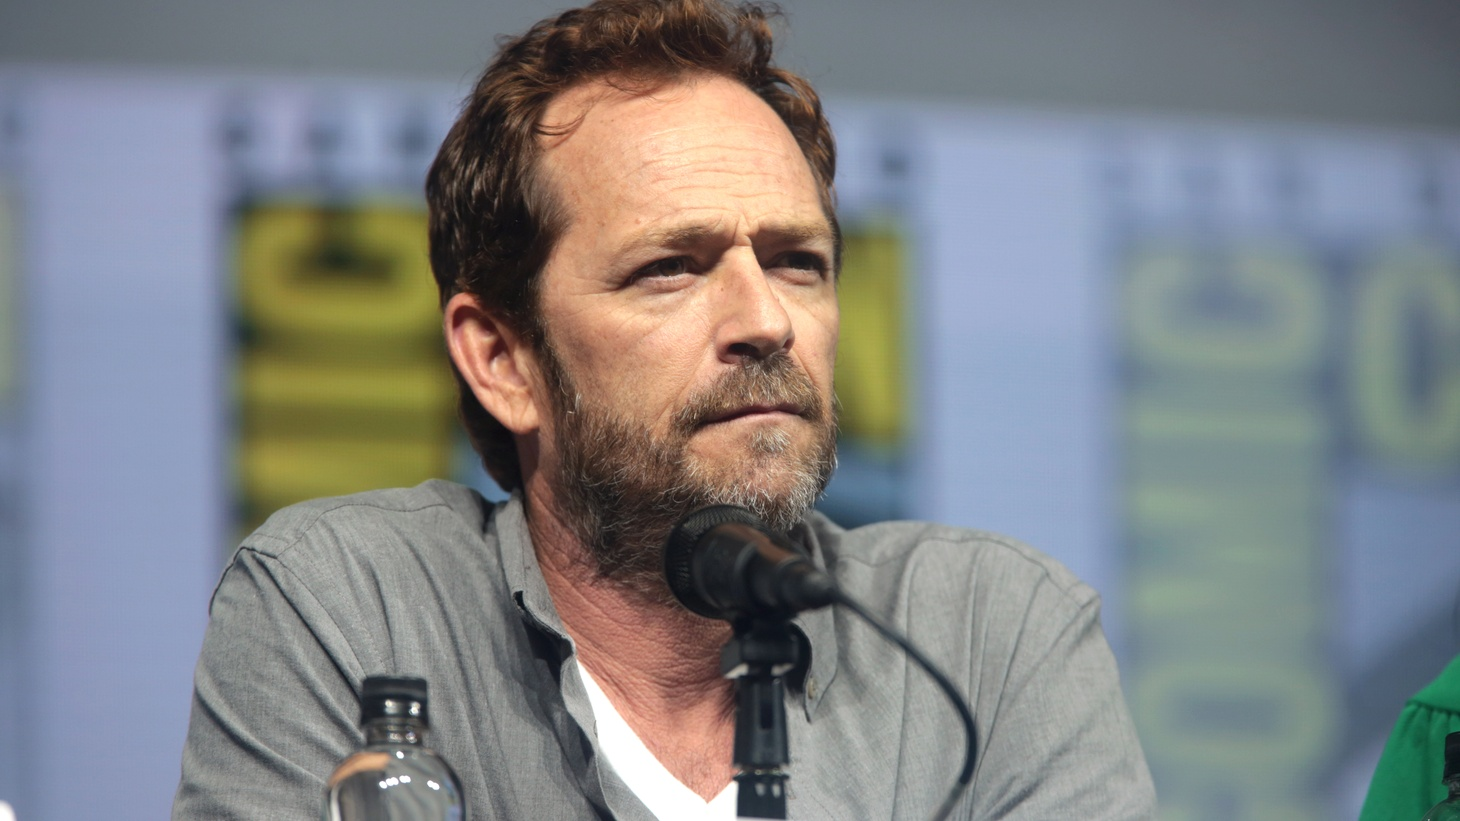 """Luke Perry speaking at 2018 San Diego Comic Con International, for """"Riverdale,"""" at the San Diego Convention Center in California."""